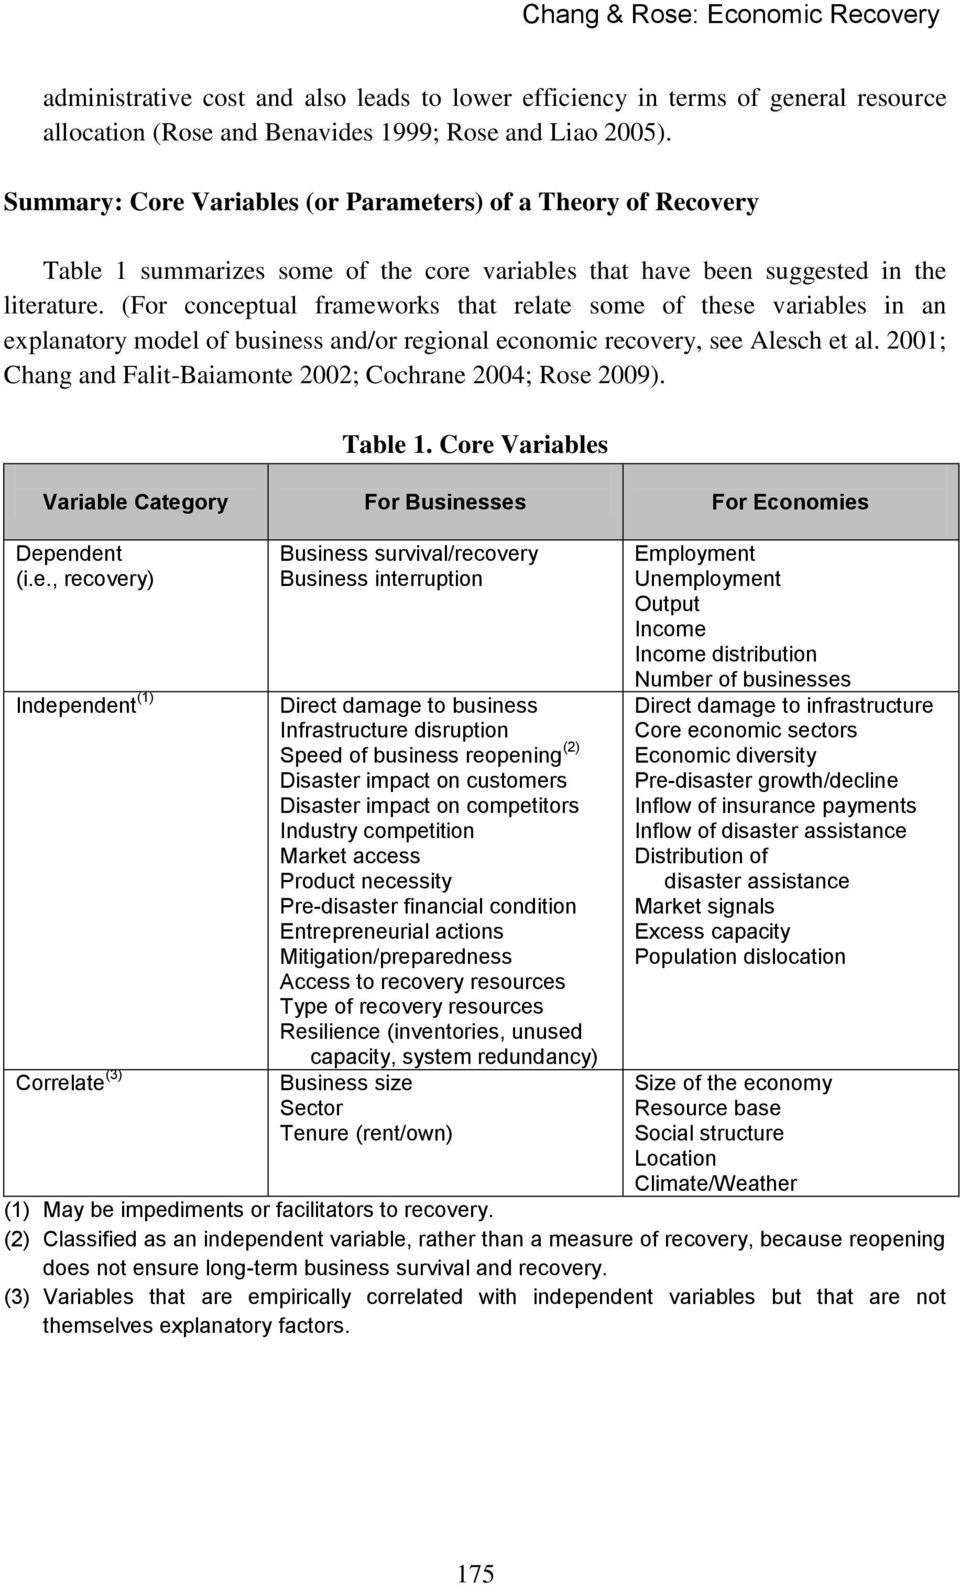 (For conceptual frameworks that relate some of these variables in an explanatory model of business and/or regional economic recovery, see Alesch et al.